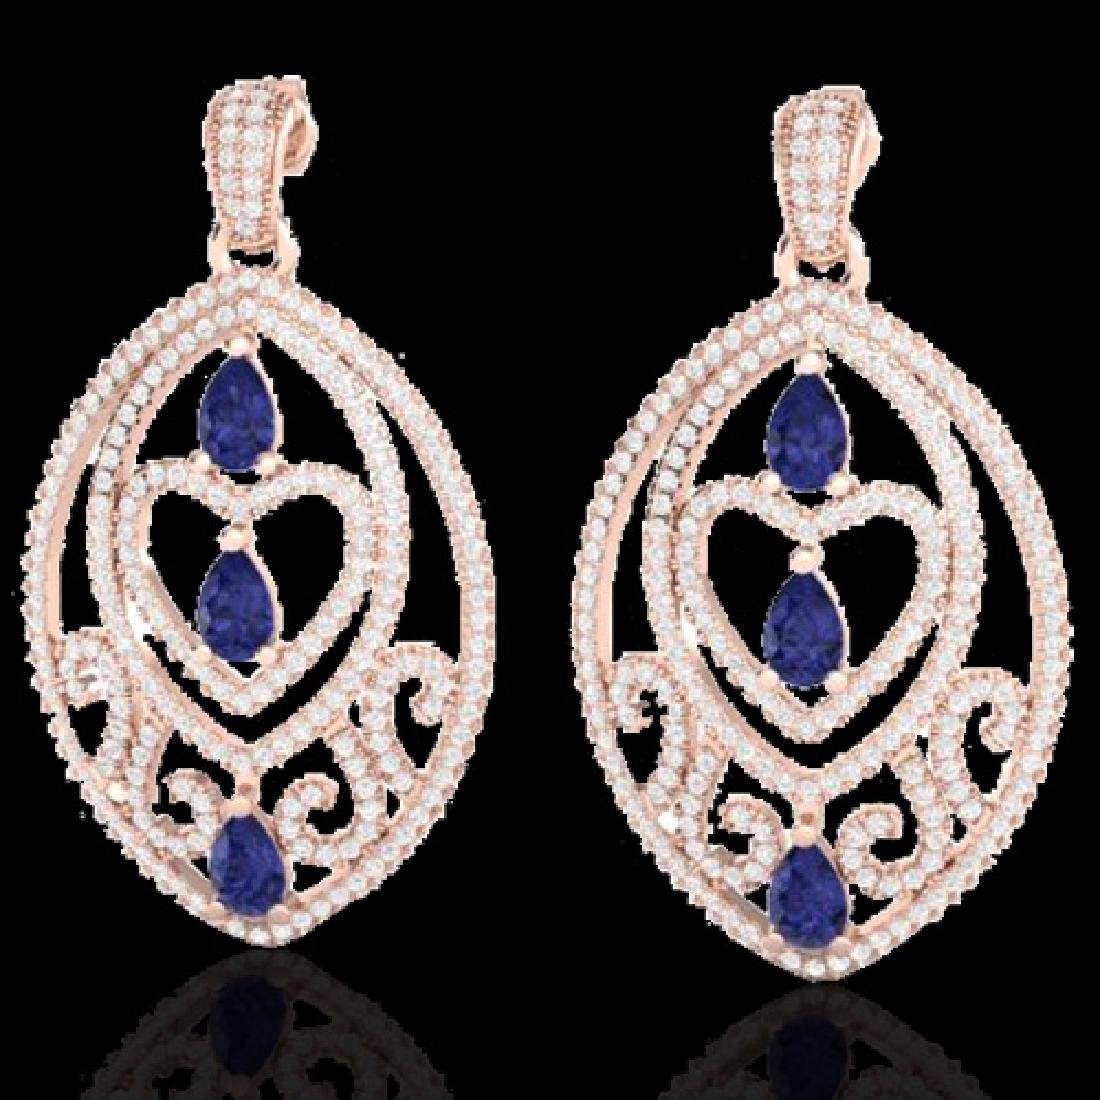 7 CTW Tanzanite & Micro Pave VS/SI Diamond Heart